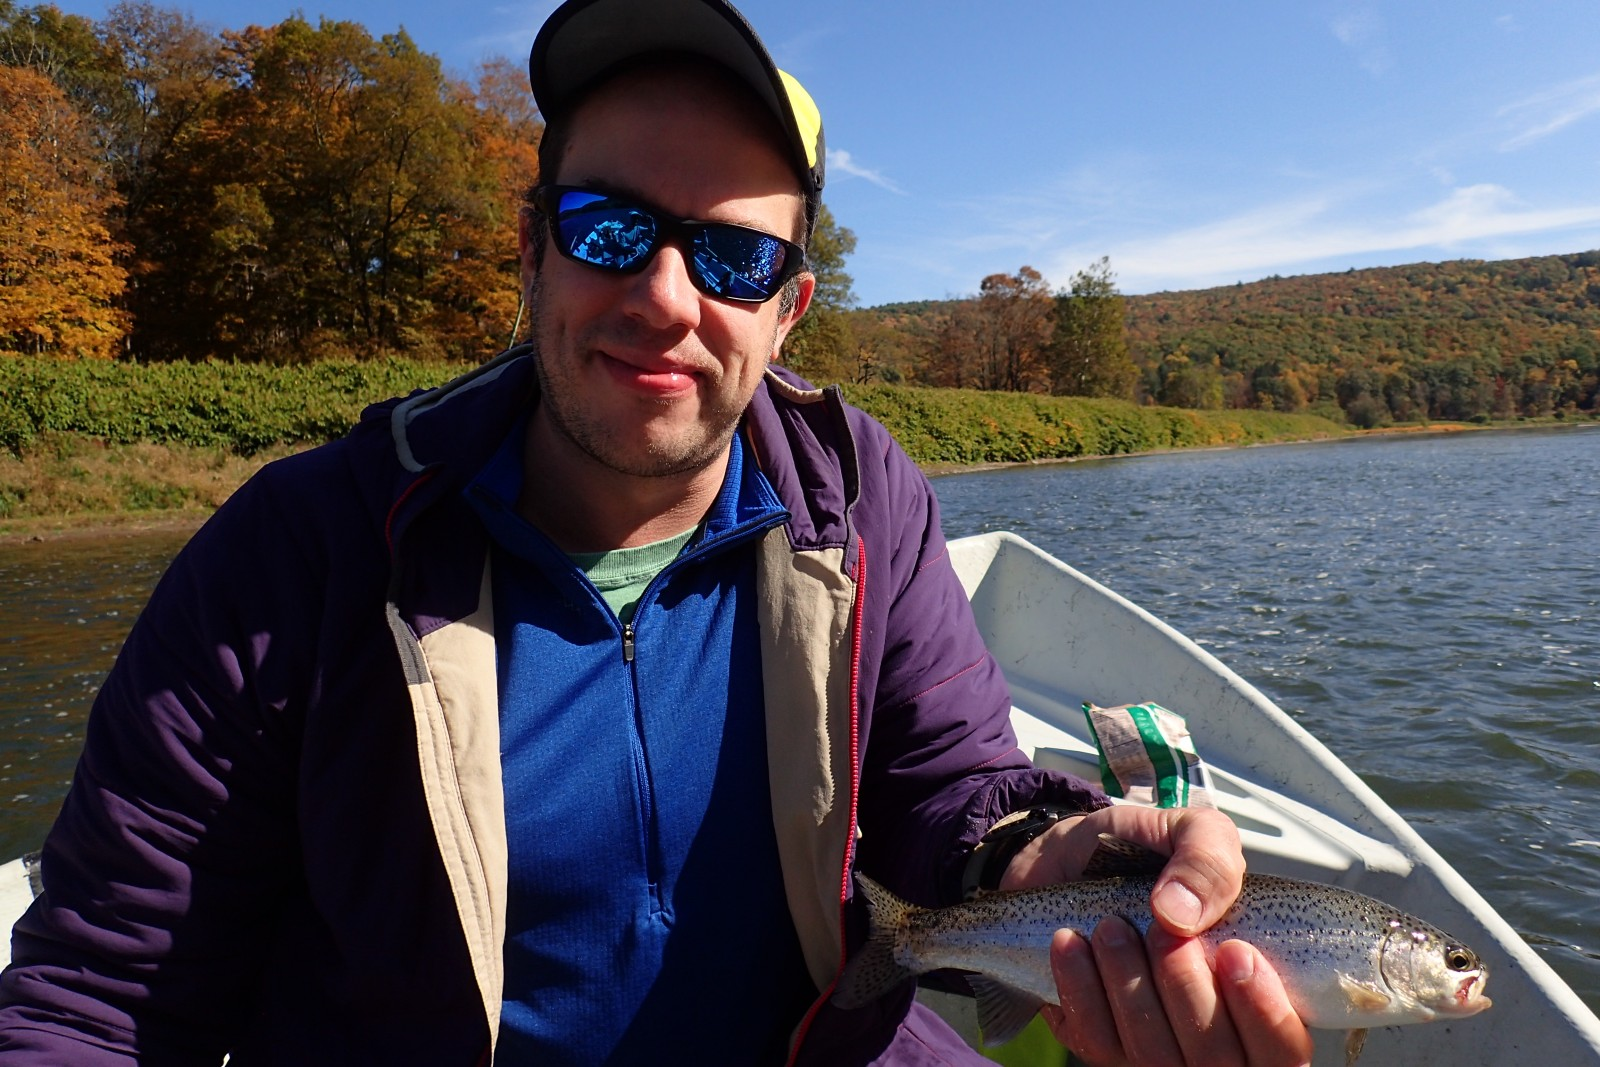 guided fly fishing tours on the delaware river for wild rainbow trout with jesse filingo of filingo fly fishing